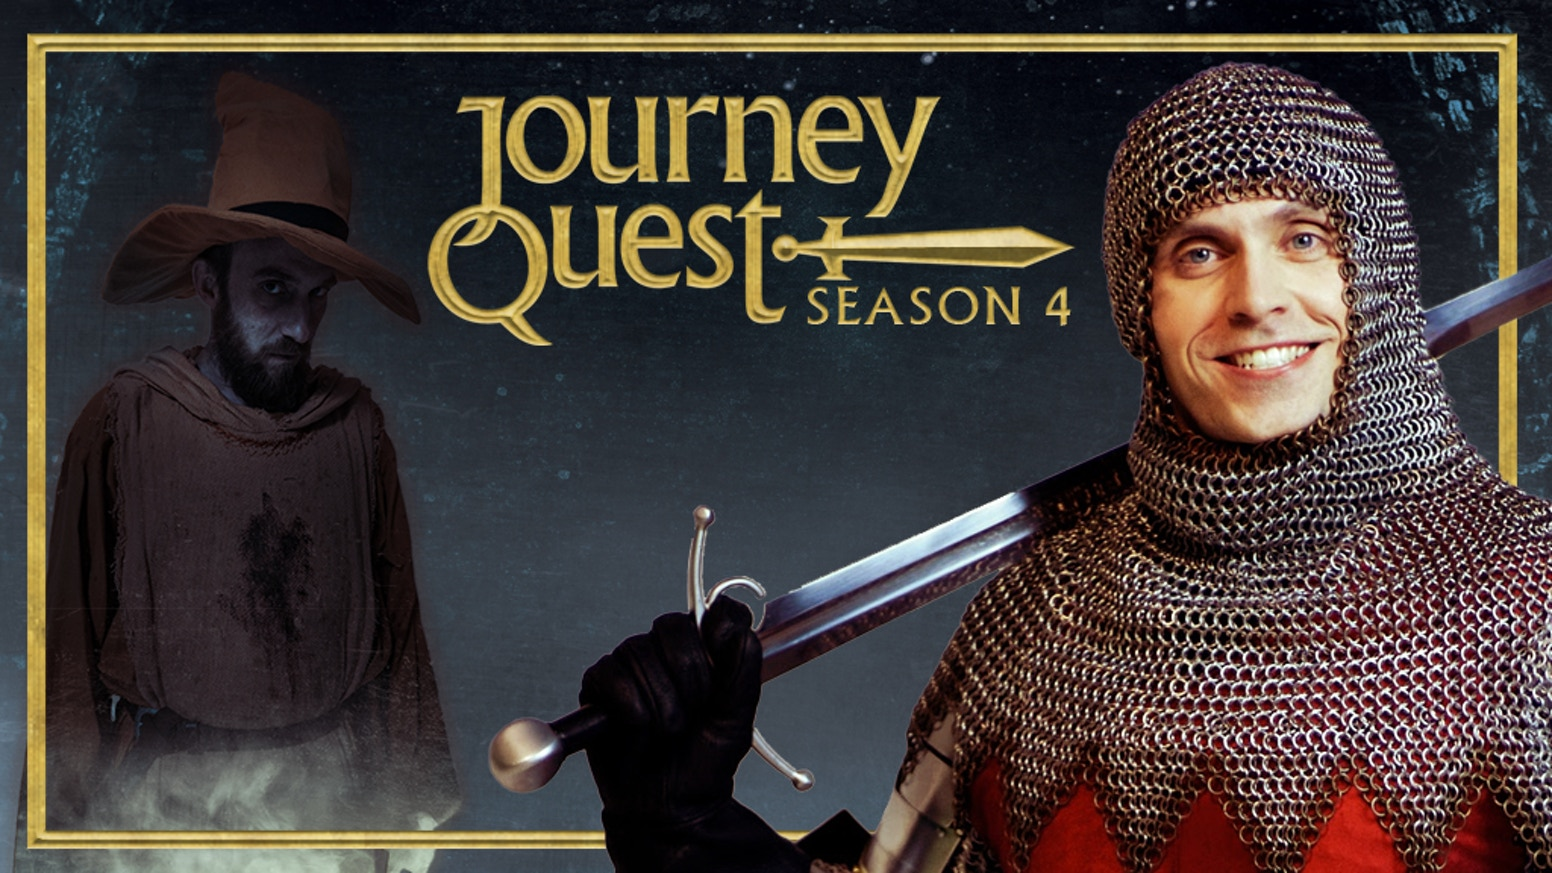 Fantasy/comedy television series JourneyQuest continues with an epic fourth season from Zombie Orpheus Entertainment.